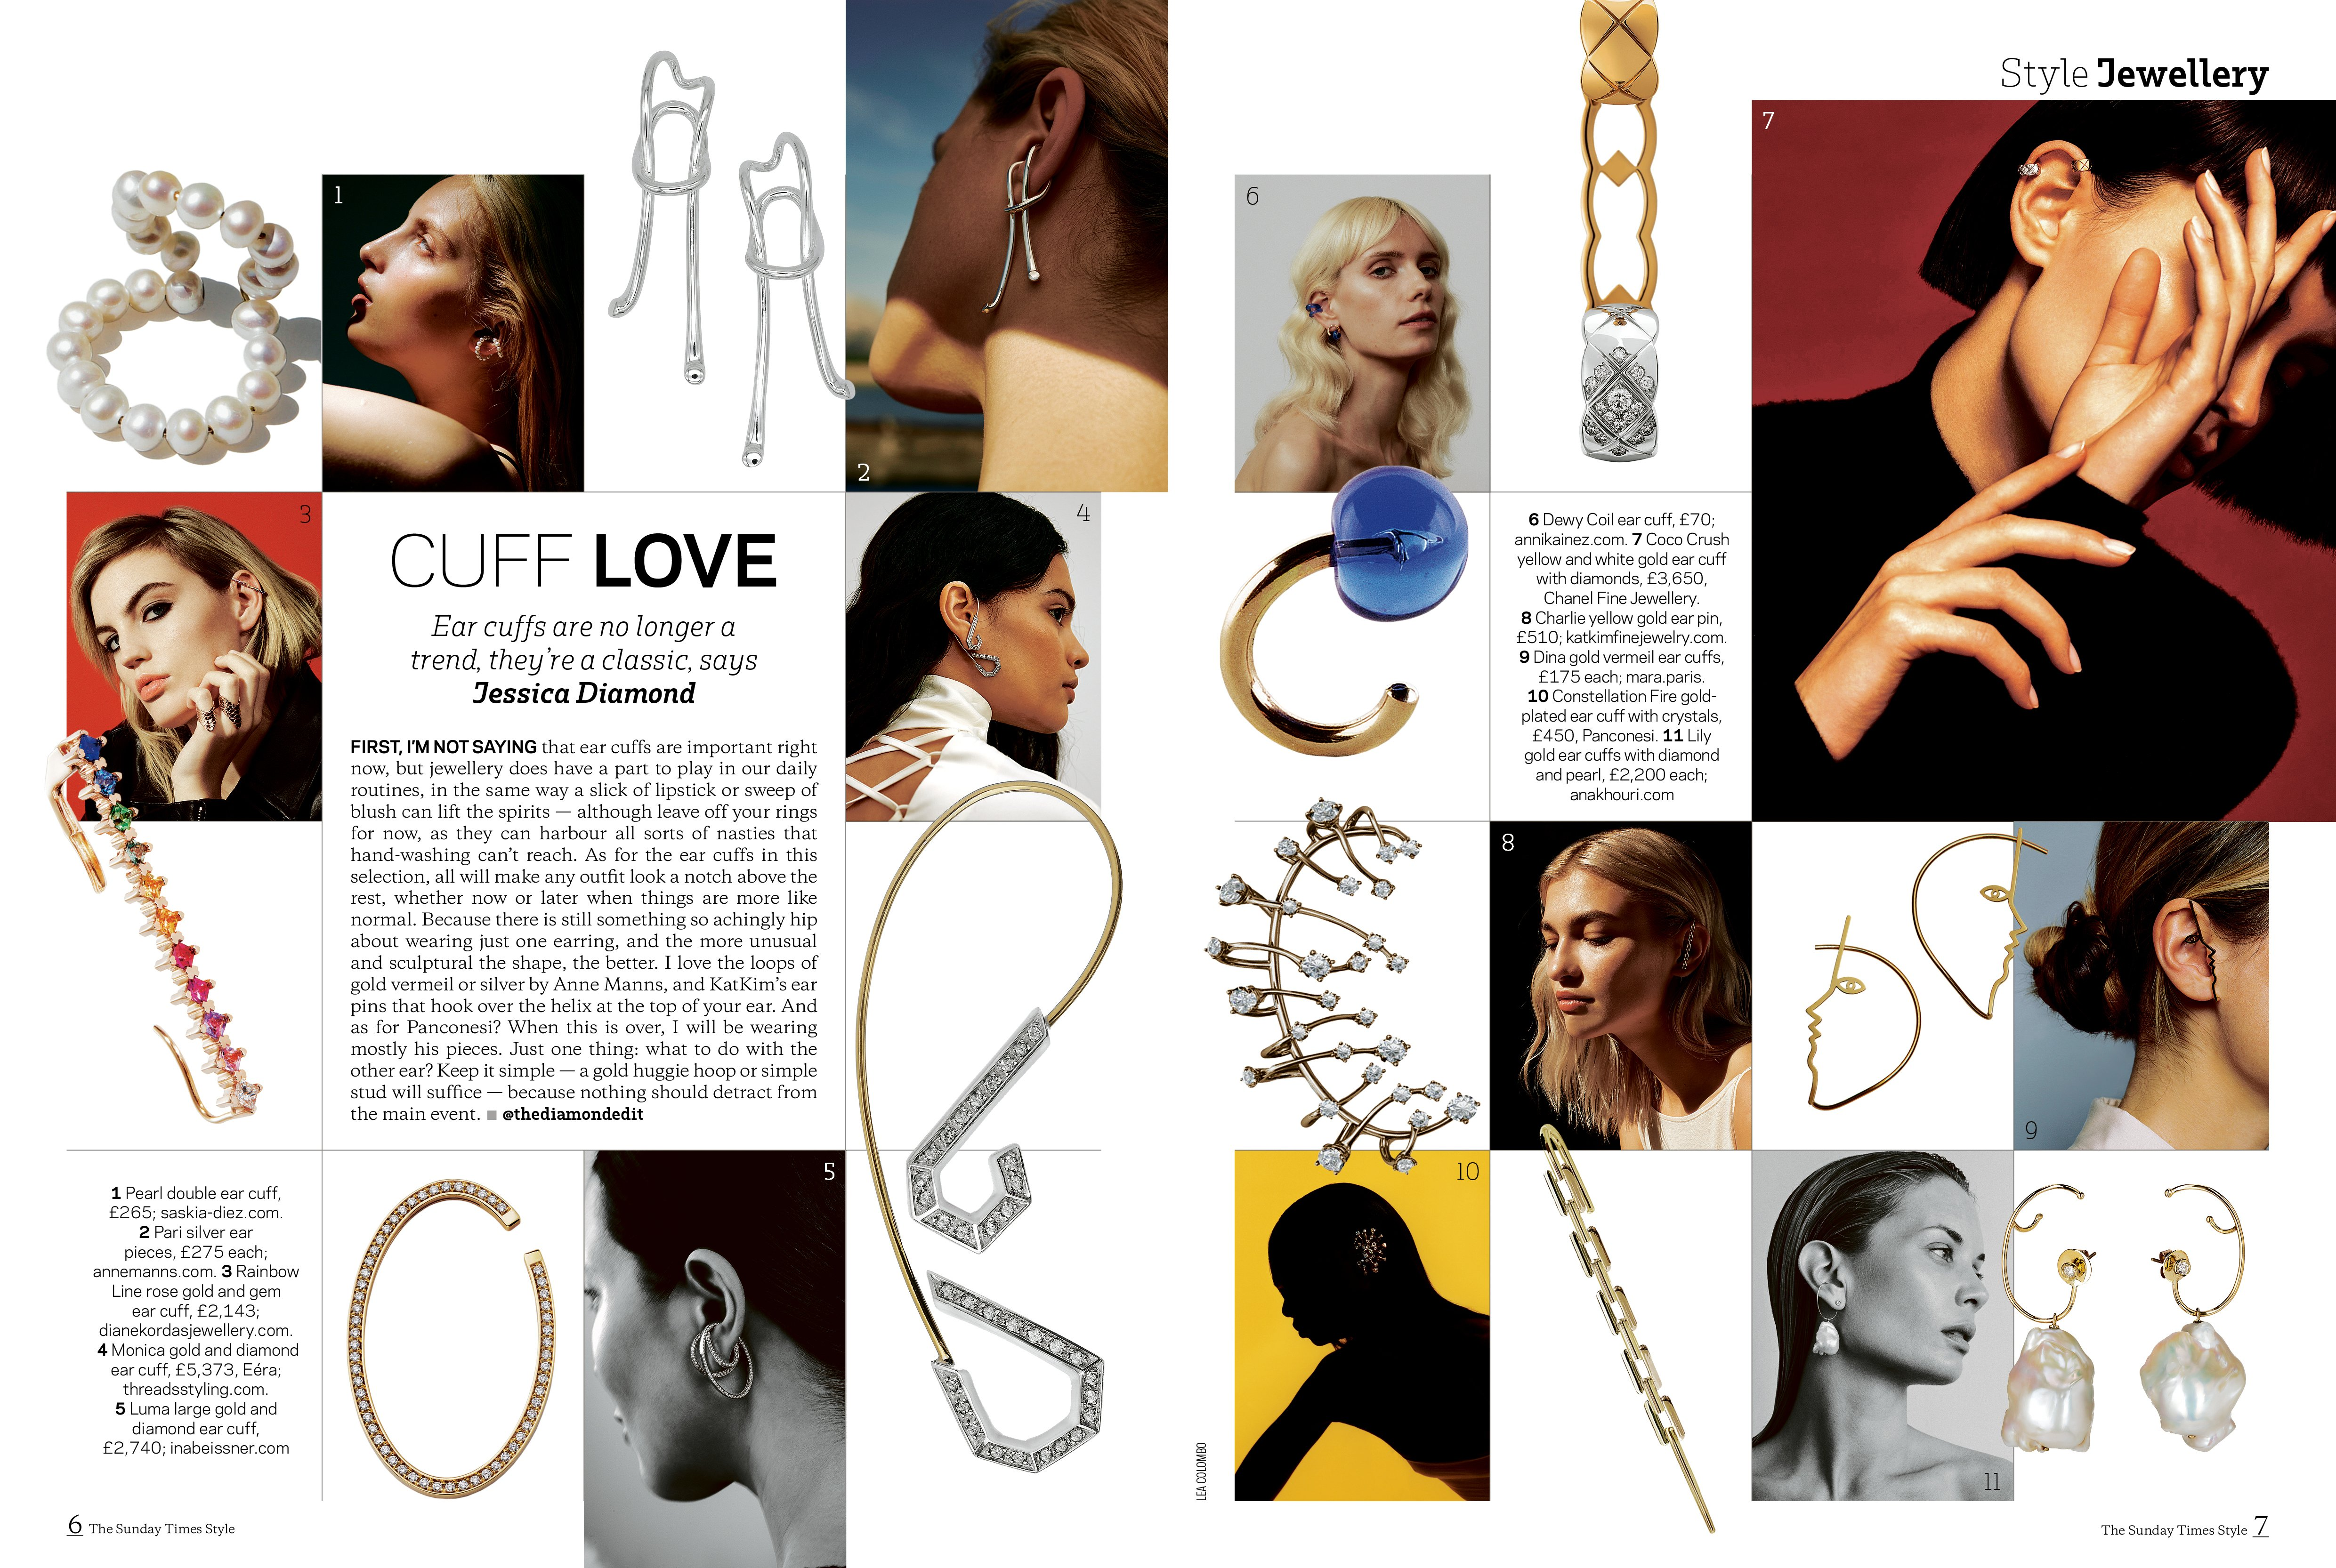 The Sunday Times - Cuff Love, Ear cuffs are no longer a trend, they're a classic, says Jessica Diamond